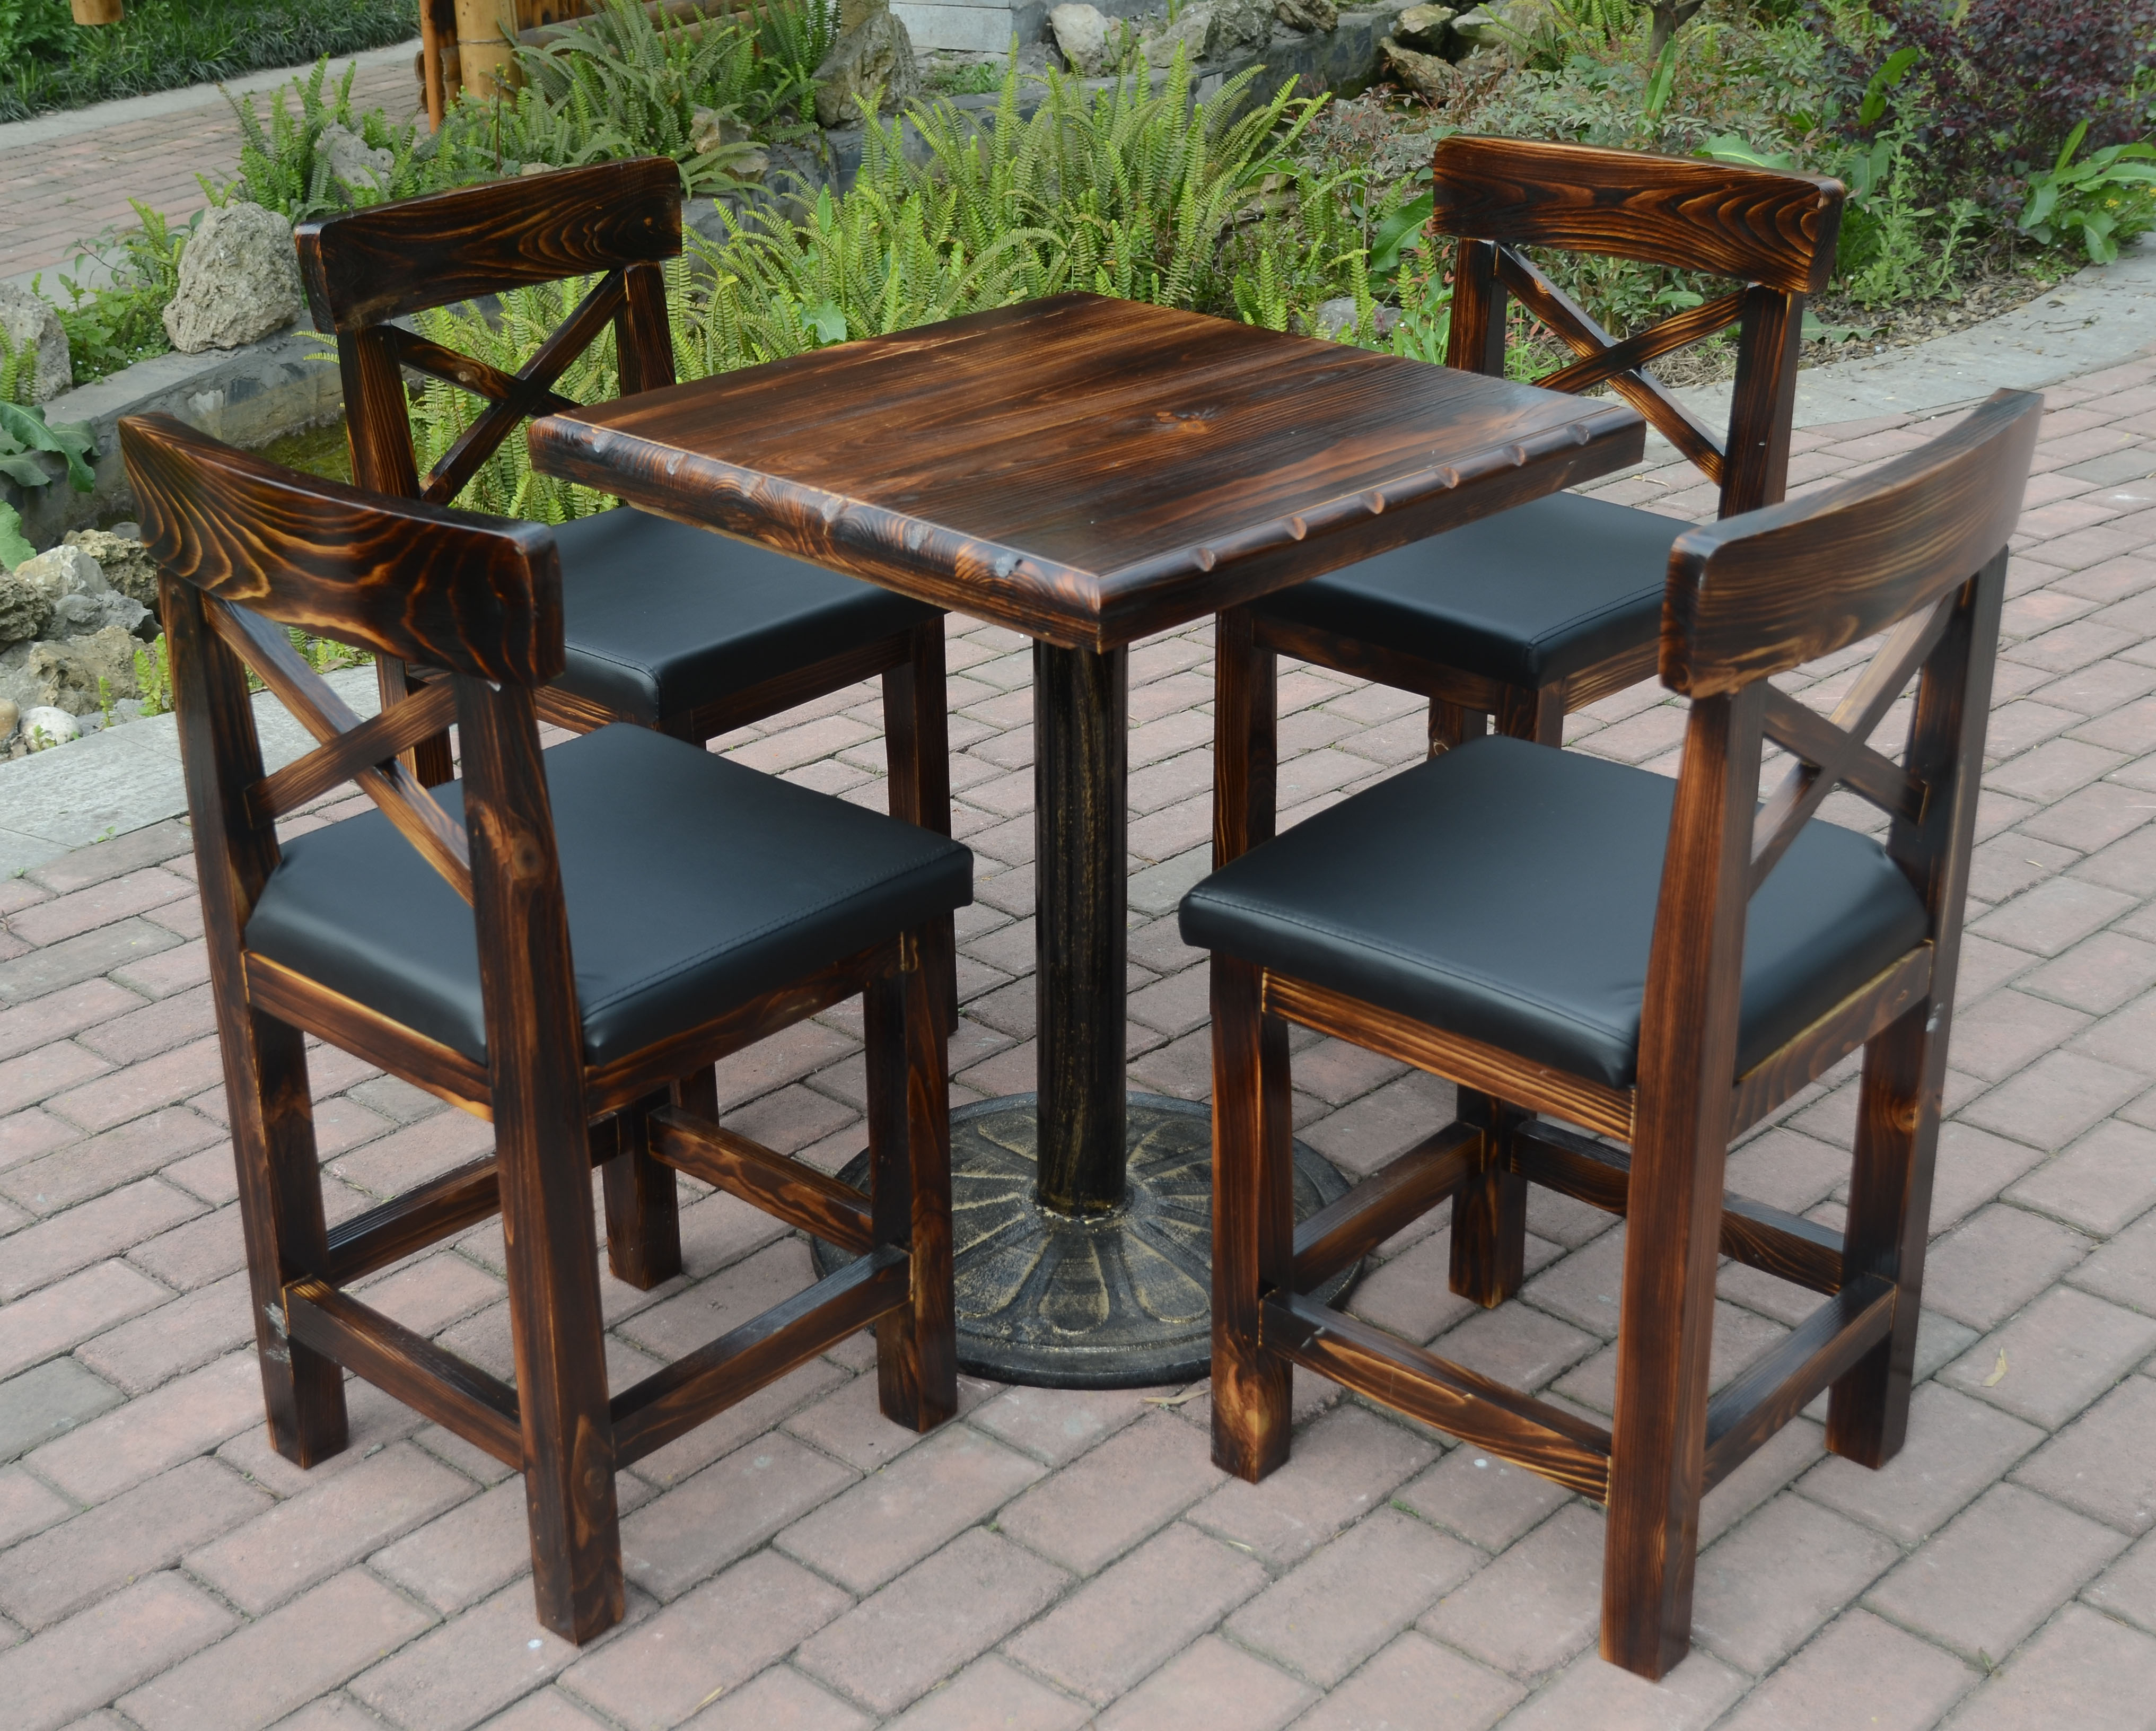 Factory Direct Wood Bar Tables And Chairs Outdoor Leisure Furniture Balcony  Cafe Table 5 Preservative Kit In Outdoor Tables From Furniture On  Aliexpress.com ...